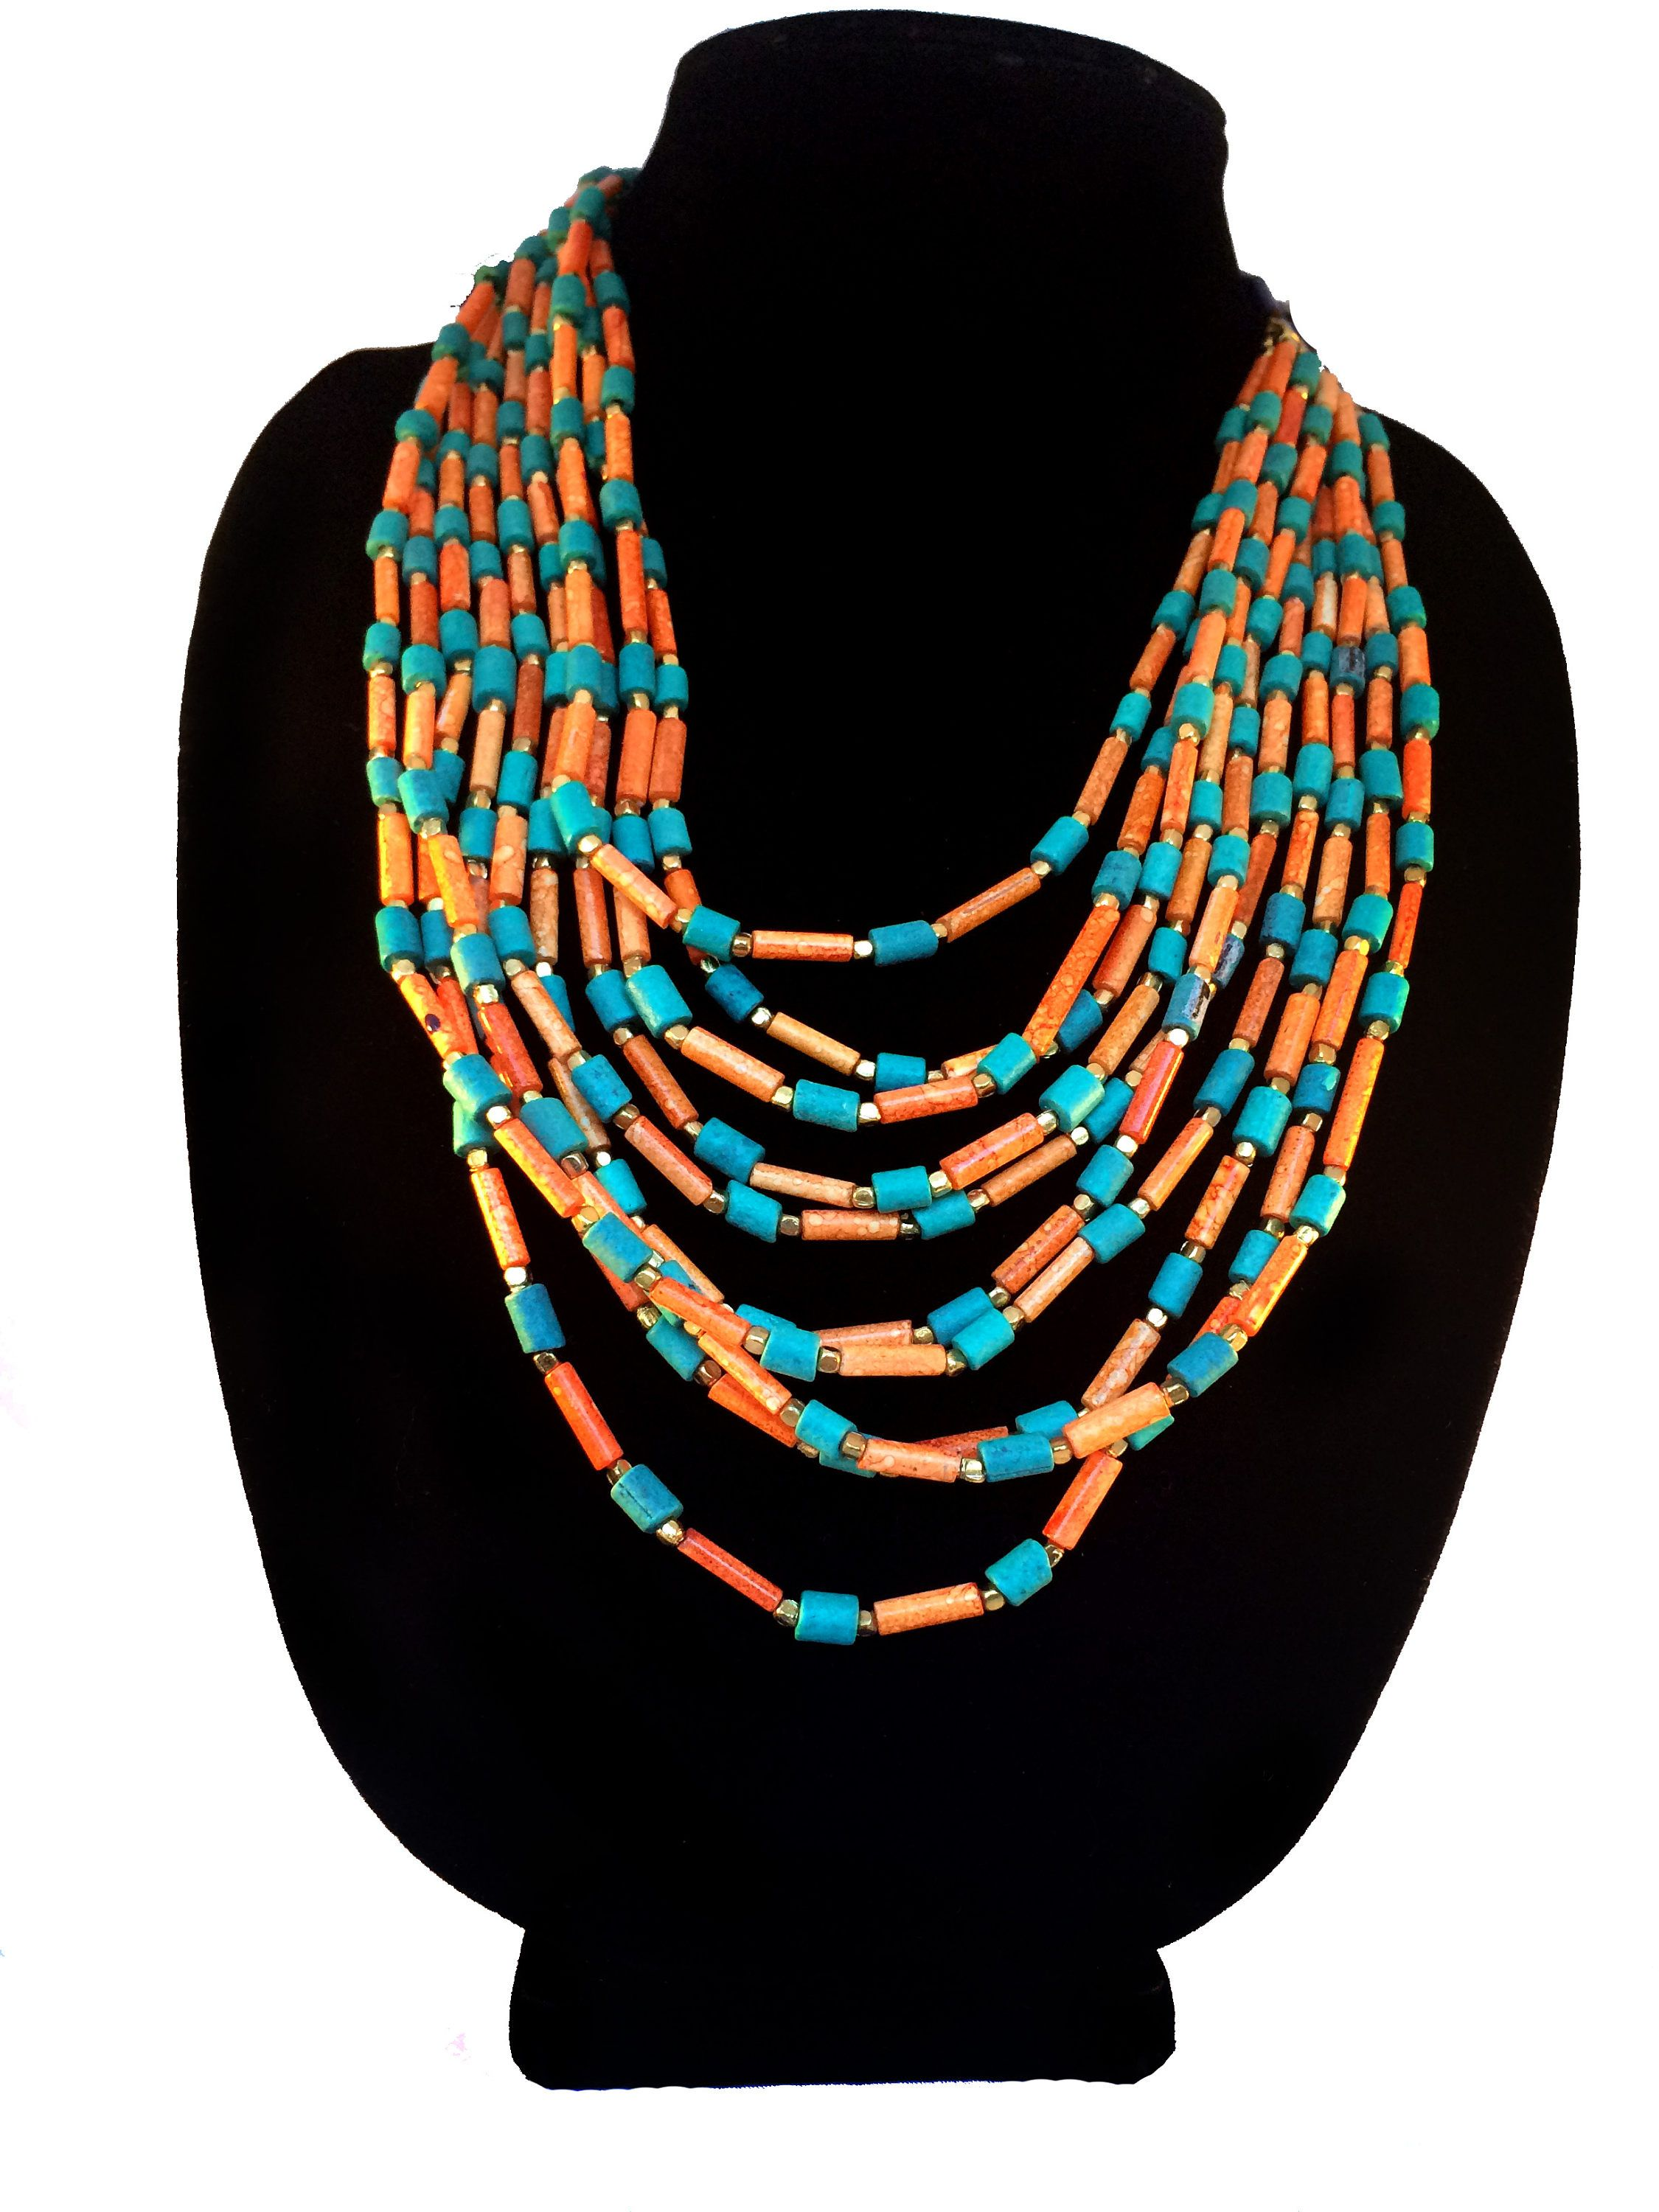 Turquoise Coral Layering Necklace,Nepal Necklace,Statement Jewelry,Tribal Jewelry,Tibet Necklace,Afghan Jewellery  by Taneesi by taneesijewelry on Etsy